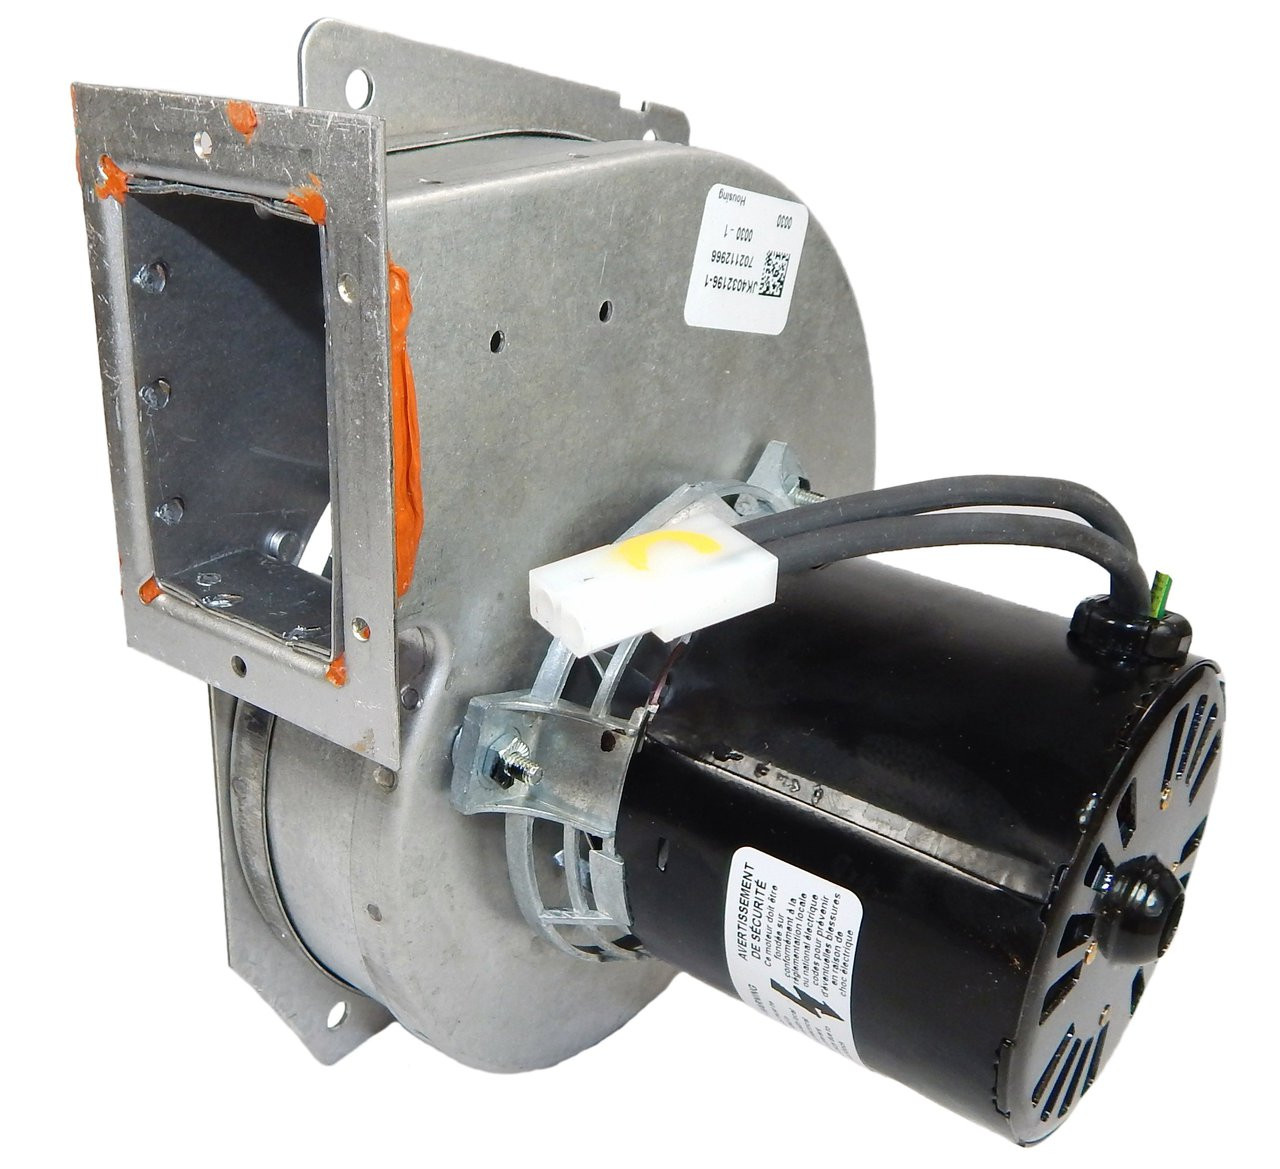 Furnace Blower Motors - Furnace Draft Inducers - Venter Motors